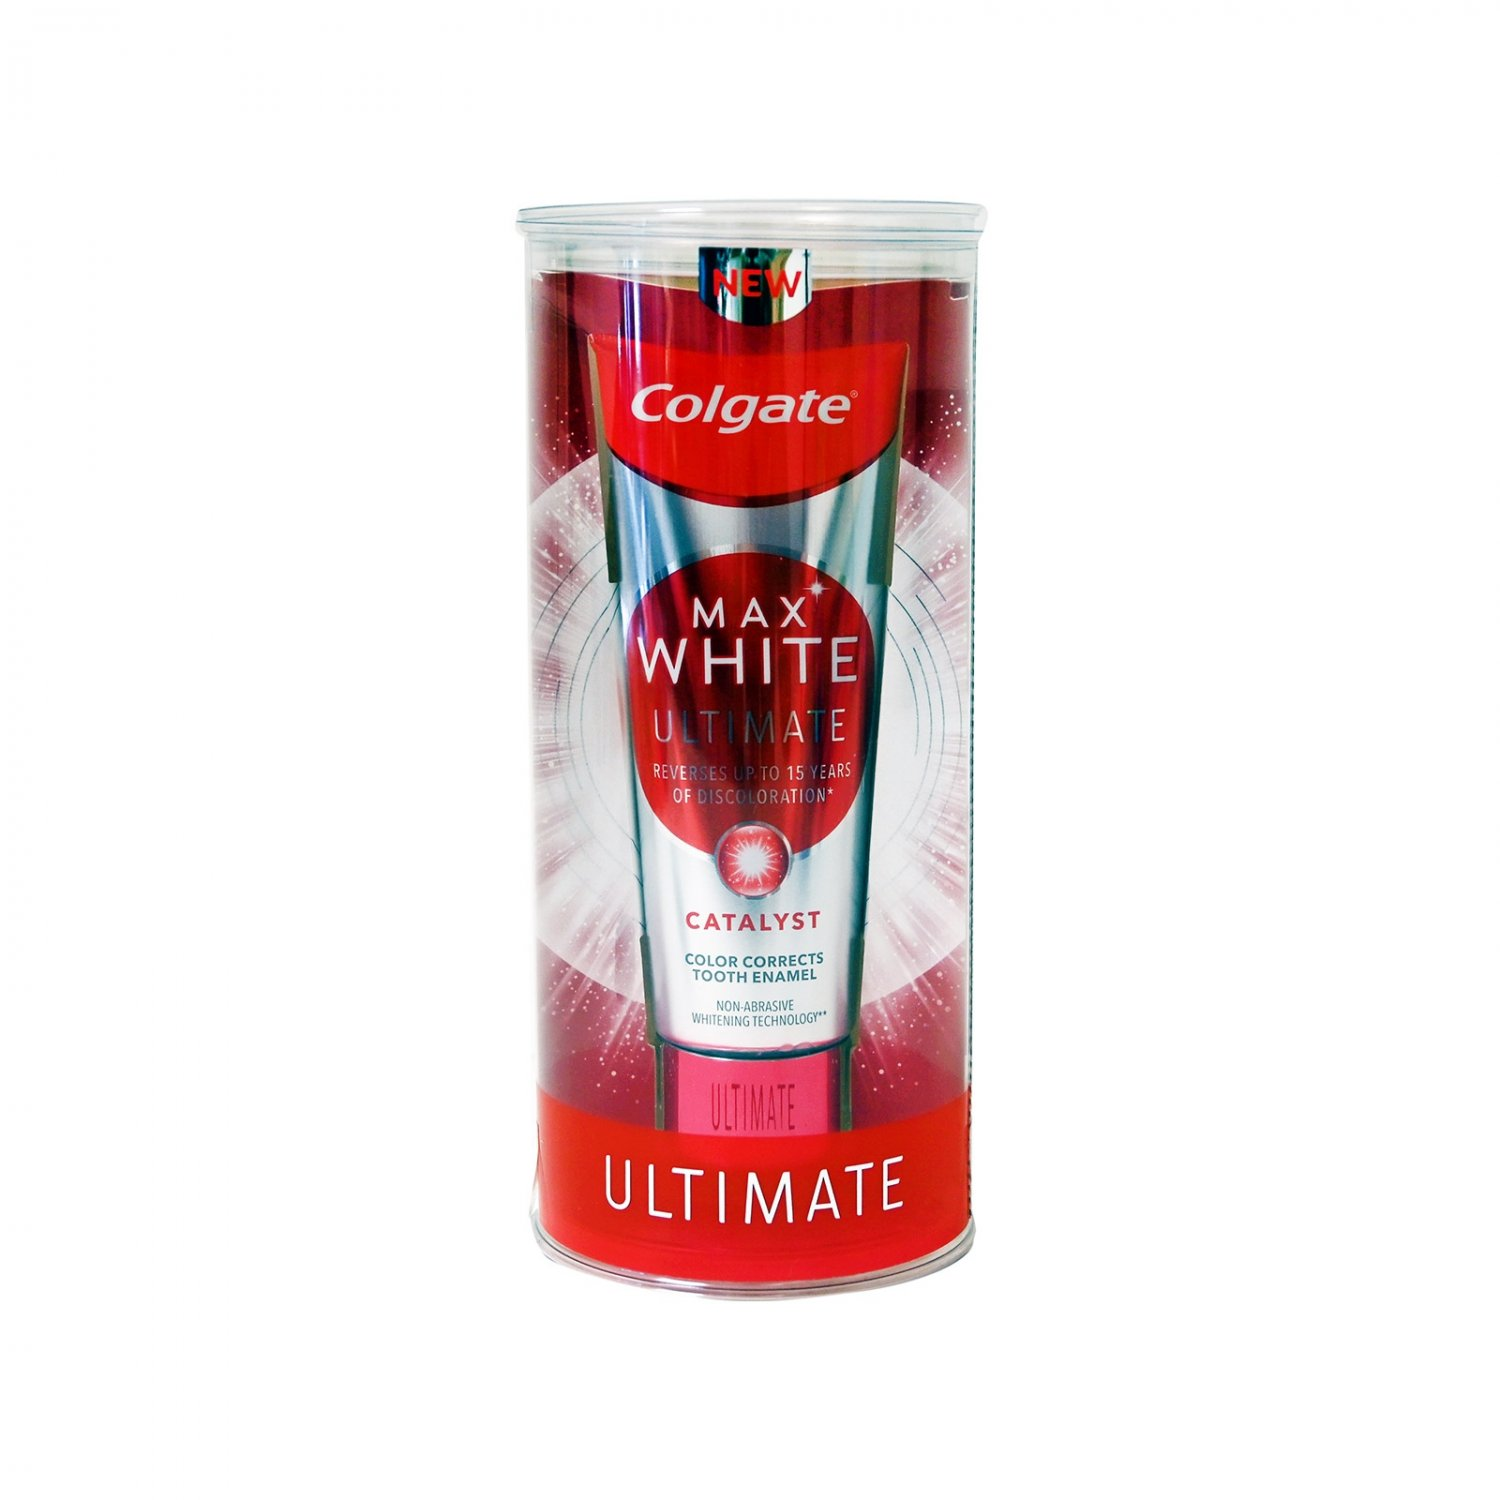 Colgate Max White Ultimate Catalyst Whitening Toothpaste OFFER - 50%